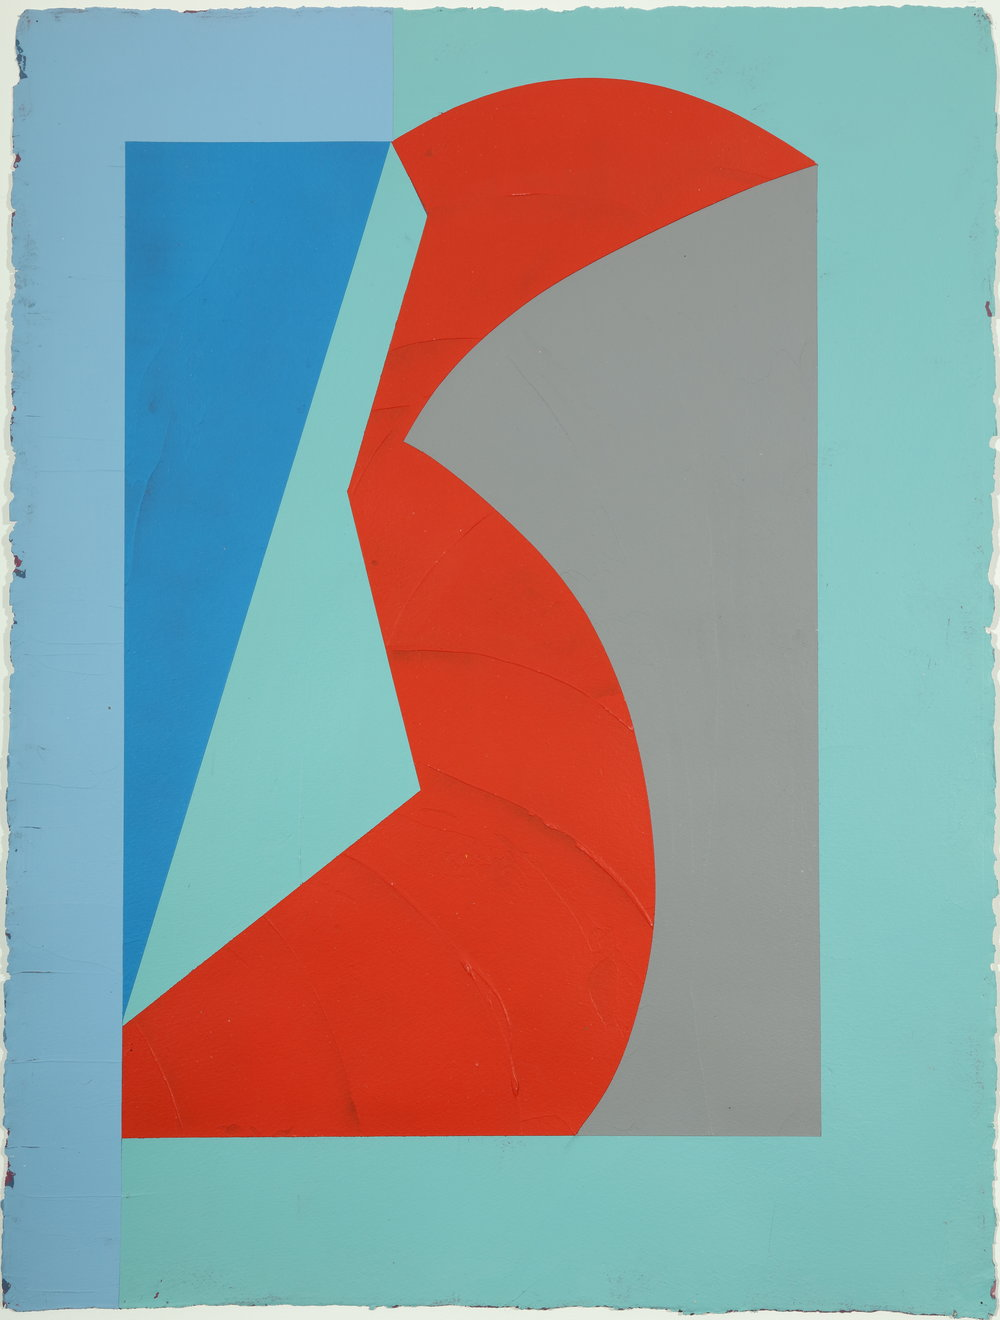 Untitled,   1983         Acrylic and modeling paste on paper 30.125H x 22.875W inches unframed